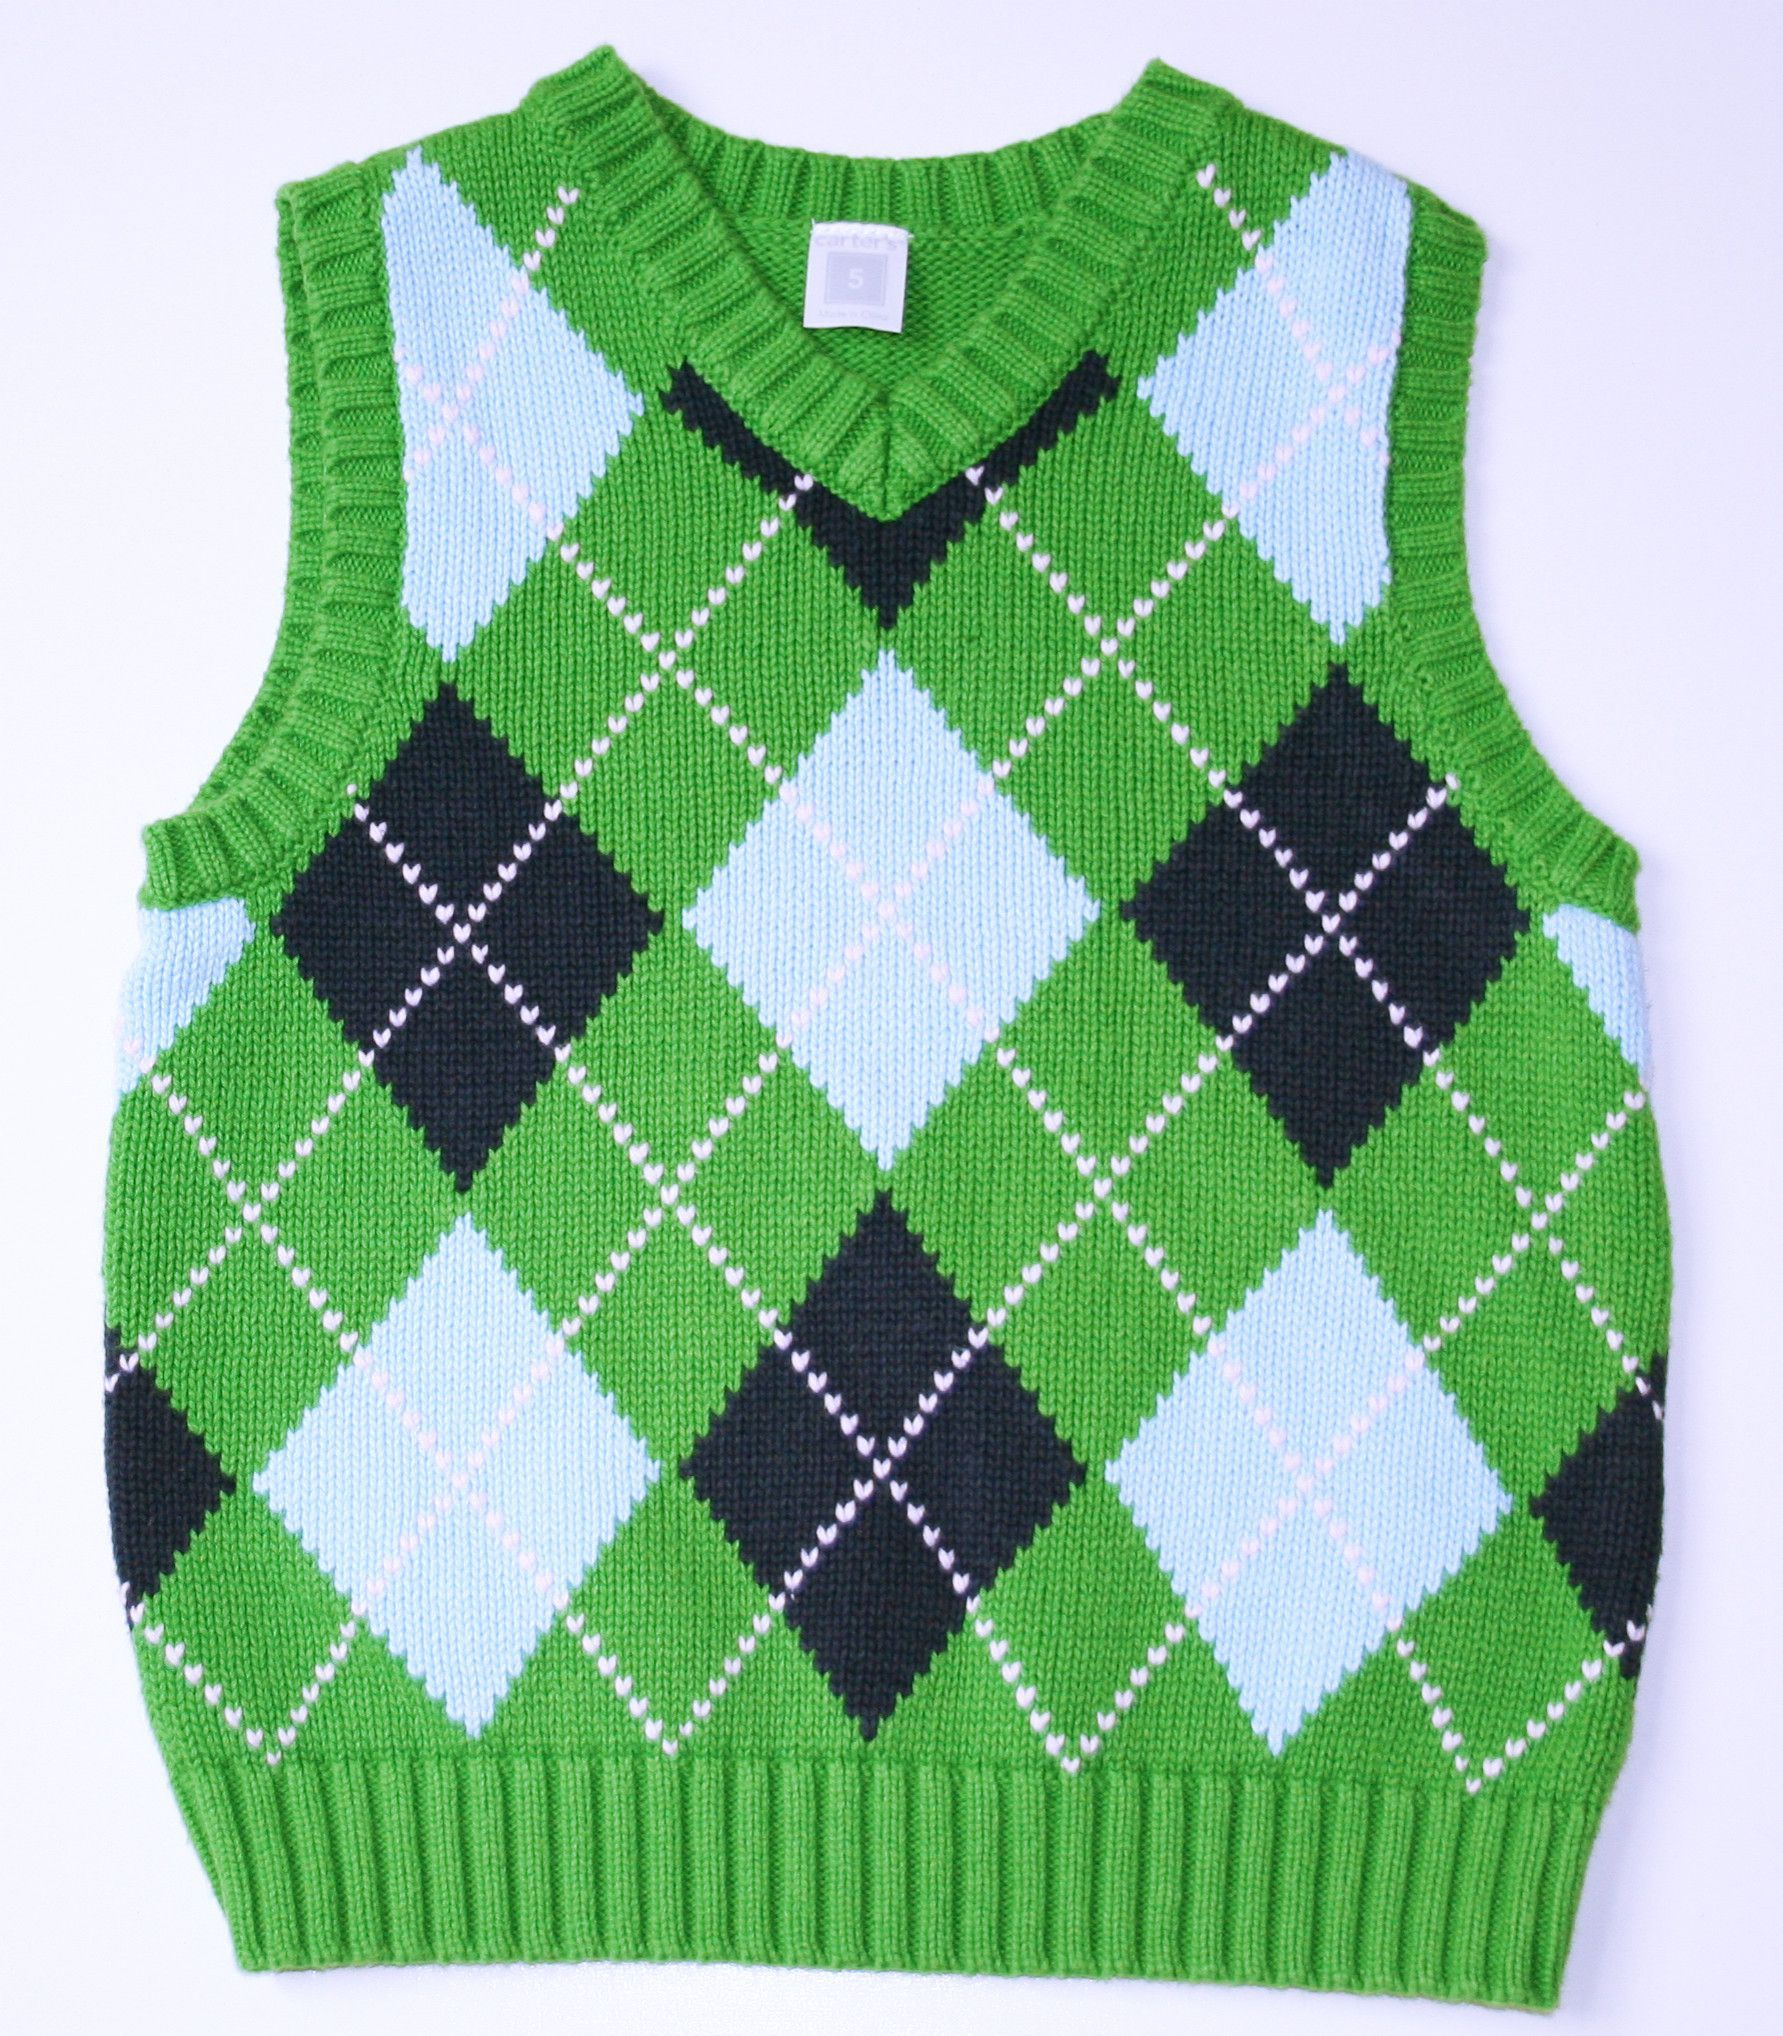 Green & Blue Argyle Sweater Vest | Products | Pinterest | Vests ...